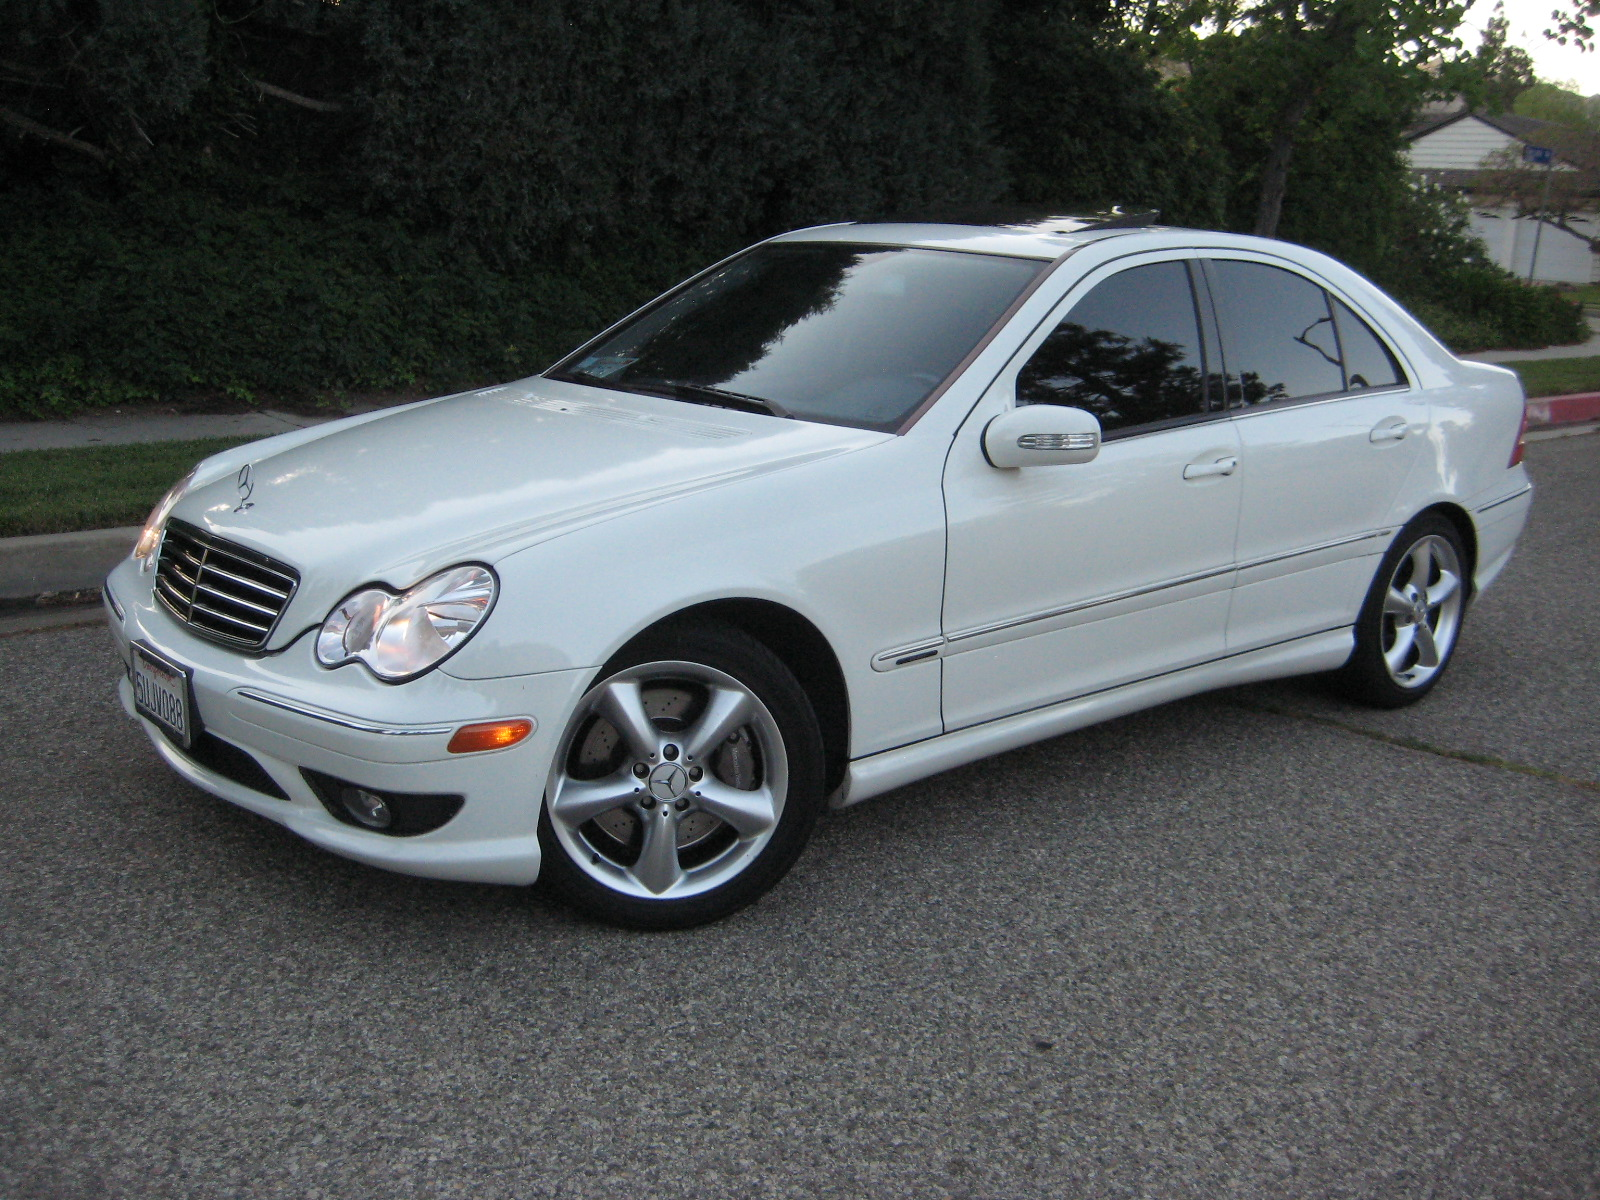 2006 mercedes benz c class pictures cargurus for Mercedes benz 2007 c230